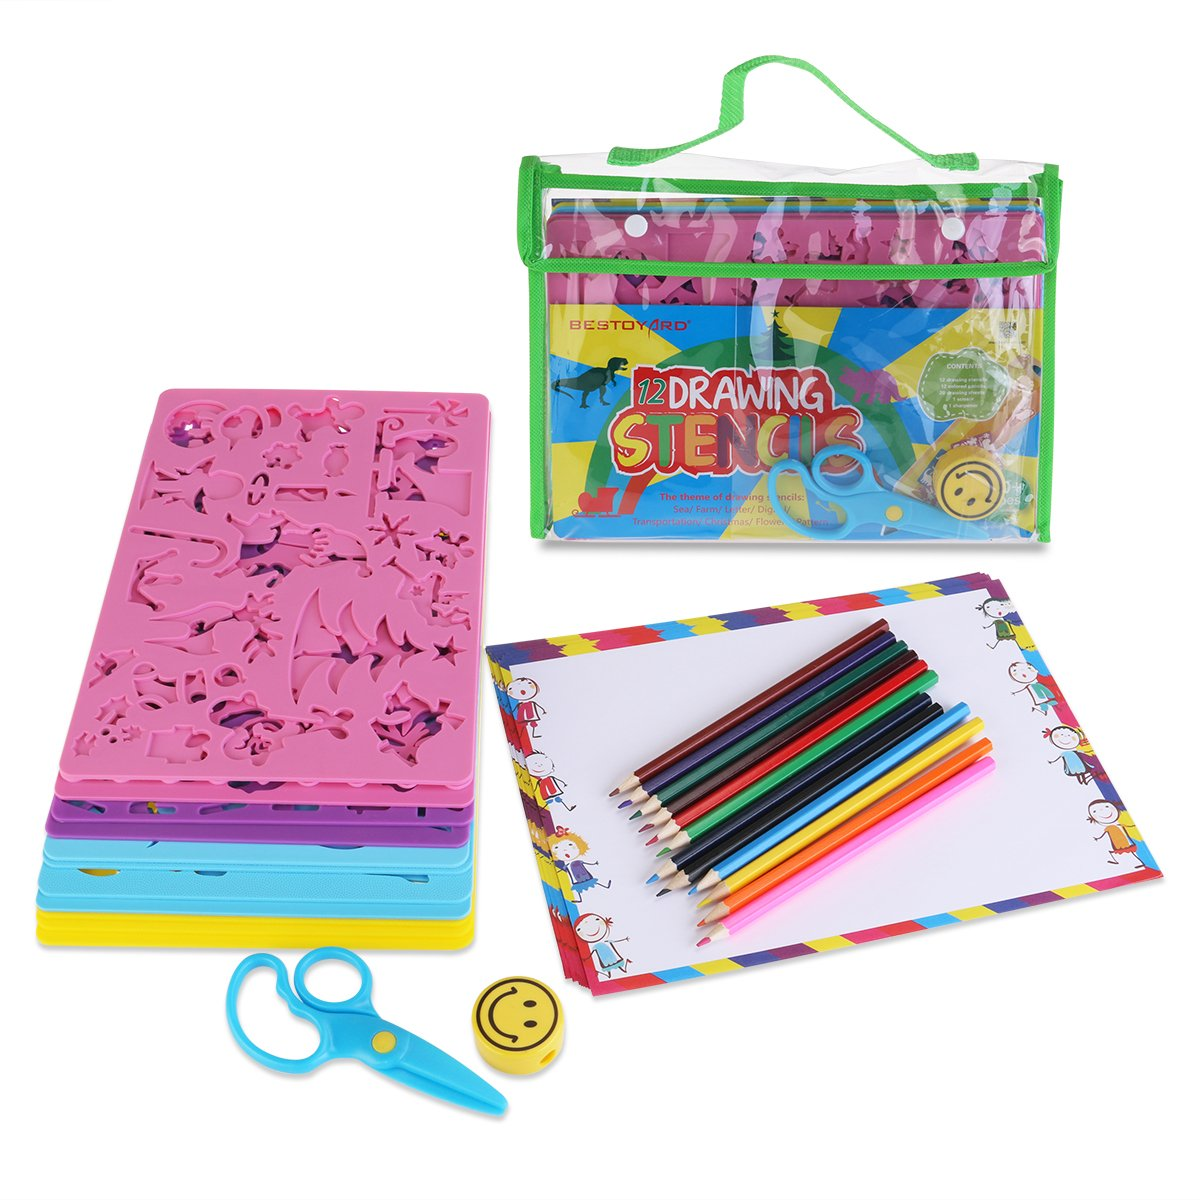 BESTOYARD Drawing Stencils with Assorted Designs Creative Craft ...